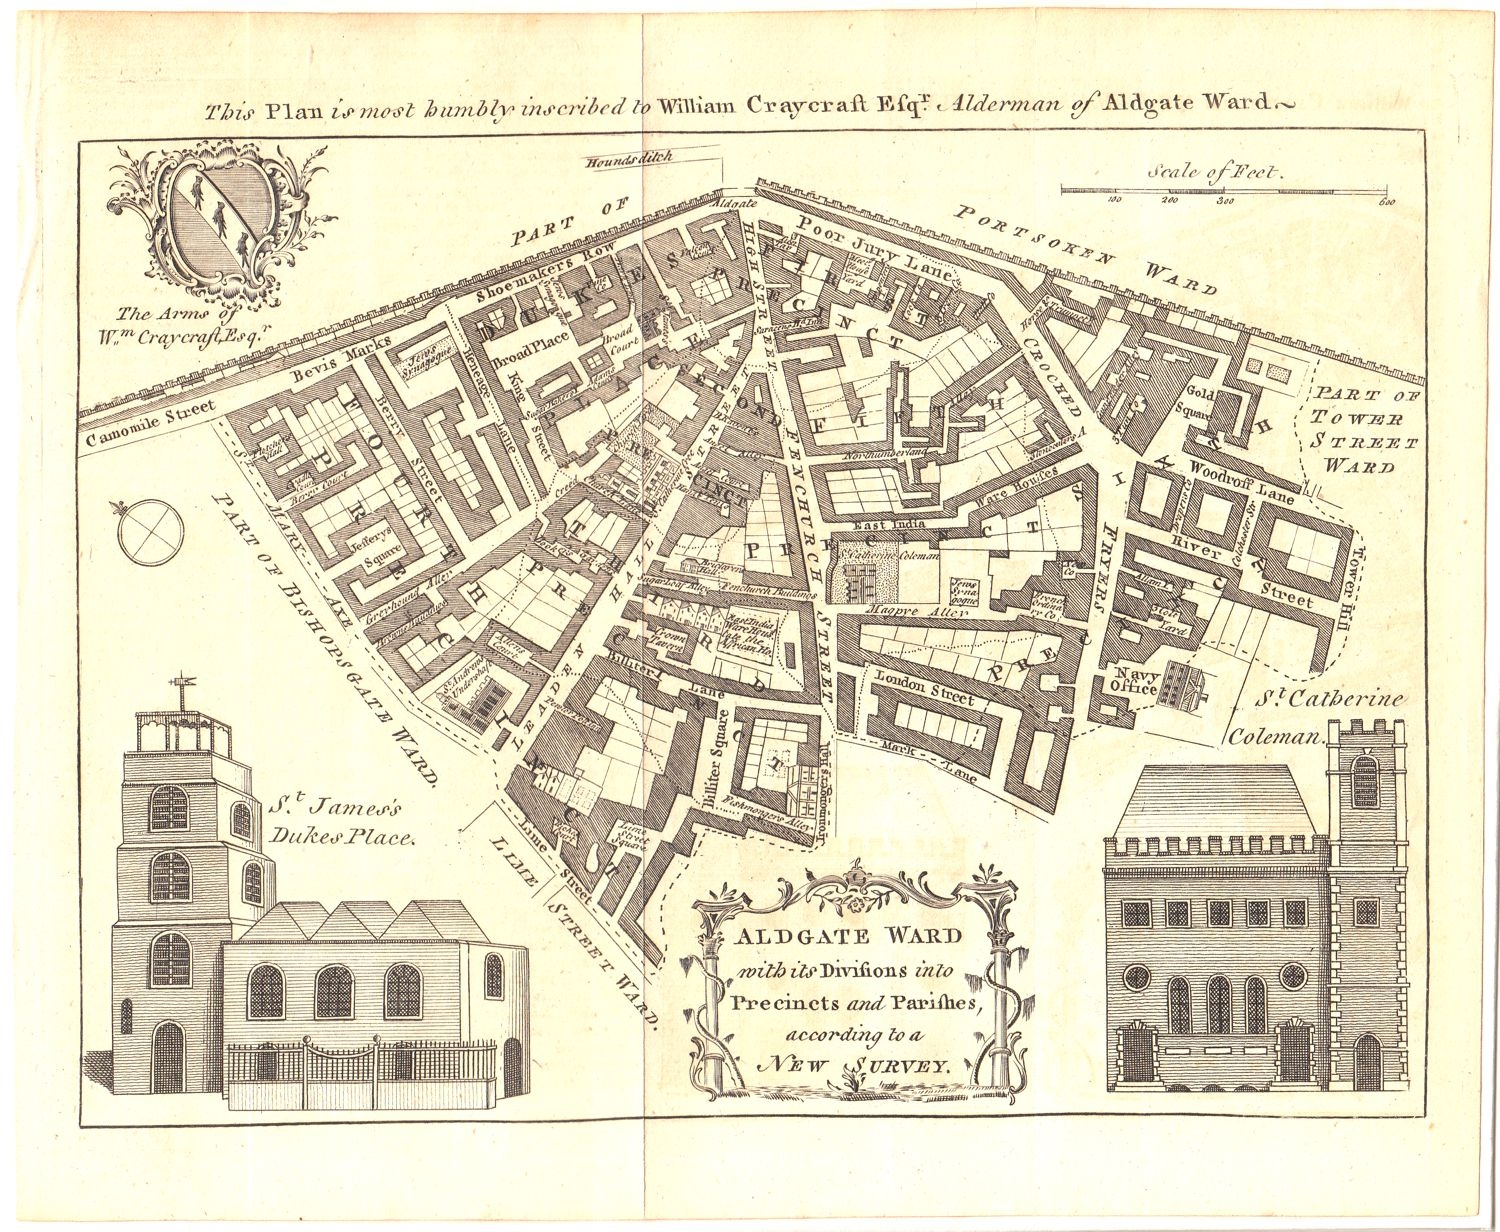 Antique Map Aldgate Ward London Circa 1770 This Old City Map Of London Depicts Aldgate Ward